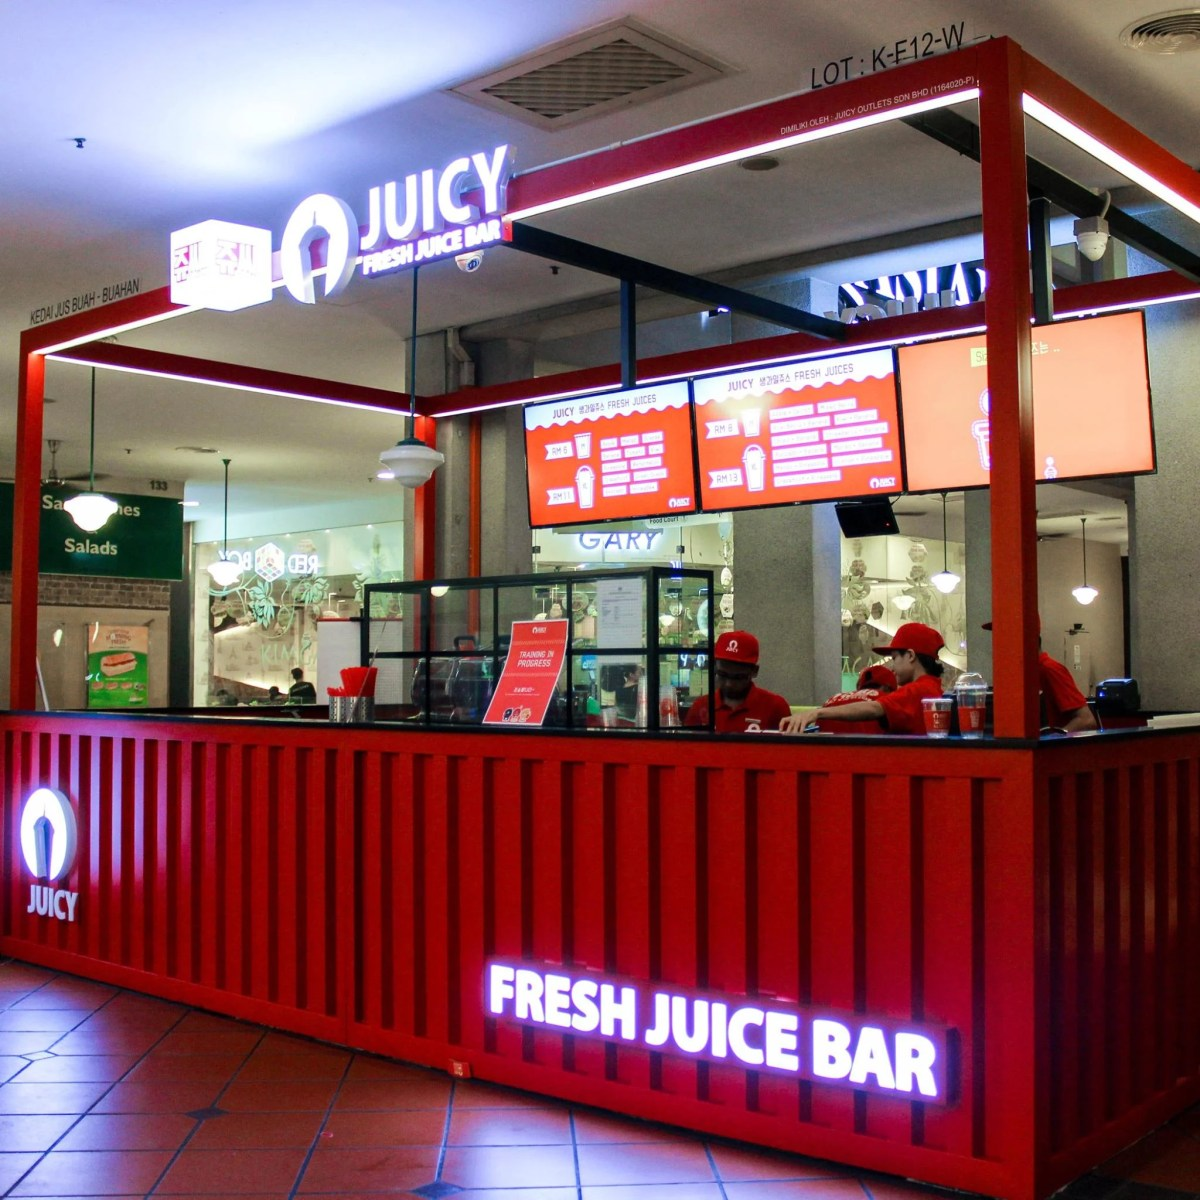 JUICY-Fresh-Juice-Bar-booth-example-Malaysia